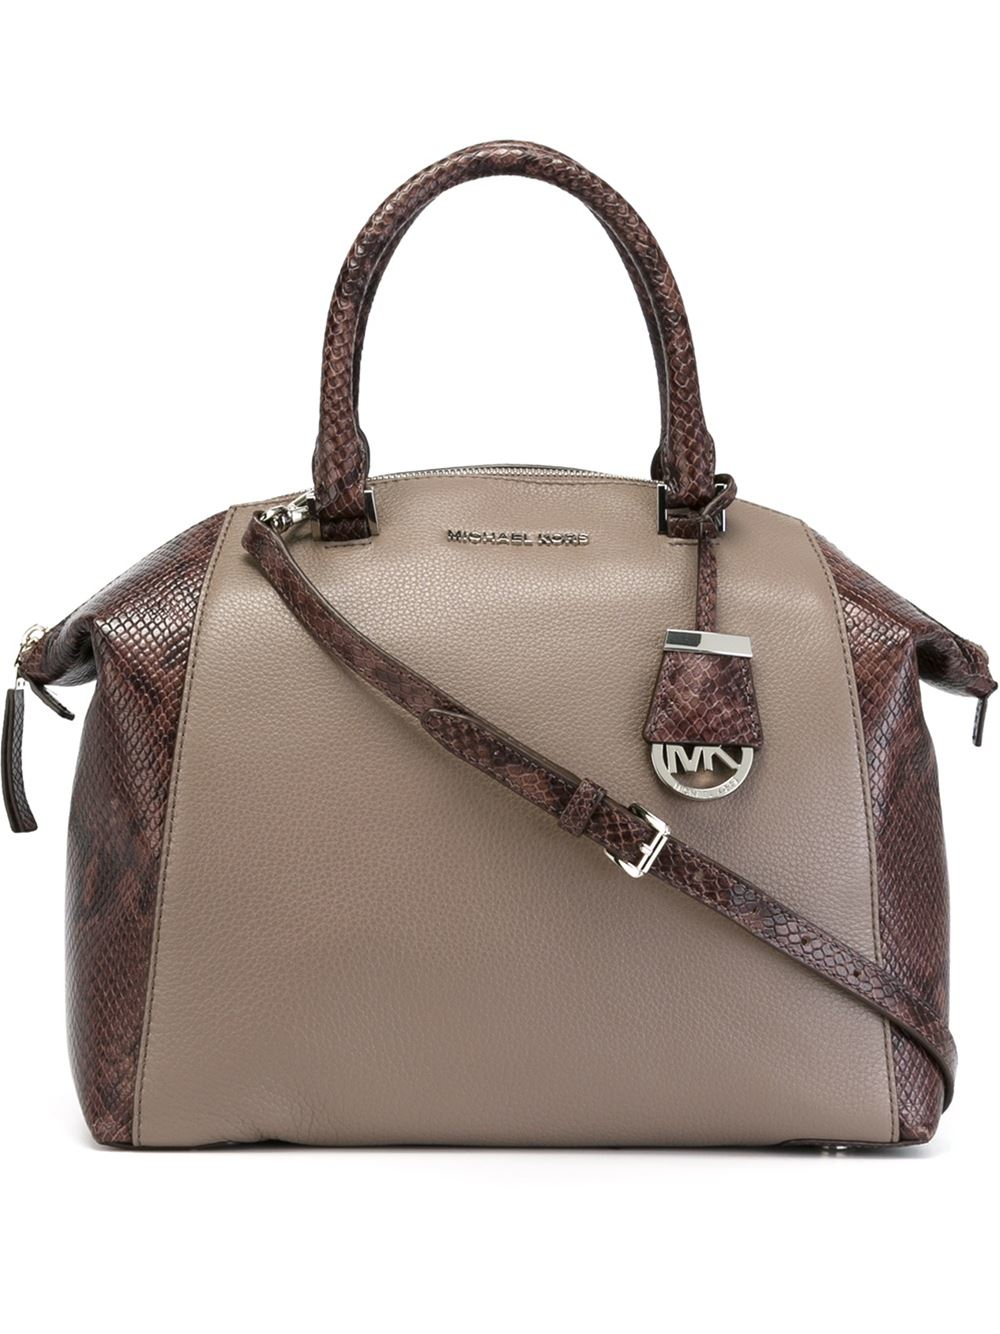 97fd166a68d6 Gallery. Previously sold at: Farfetch · Women's Michael By Michael Kors  Riley